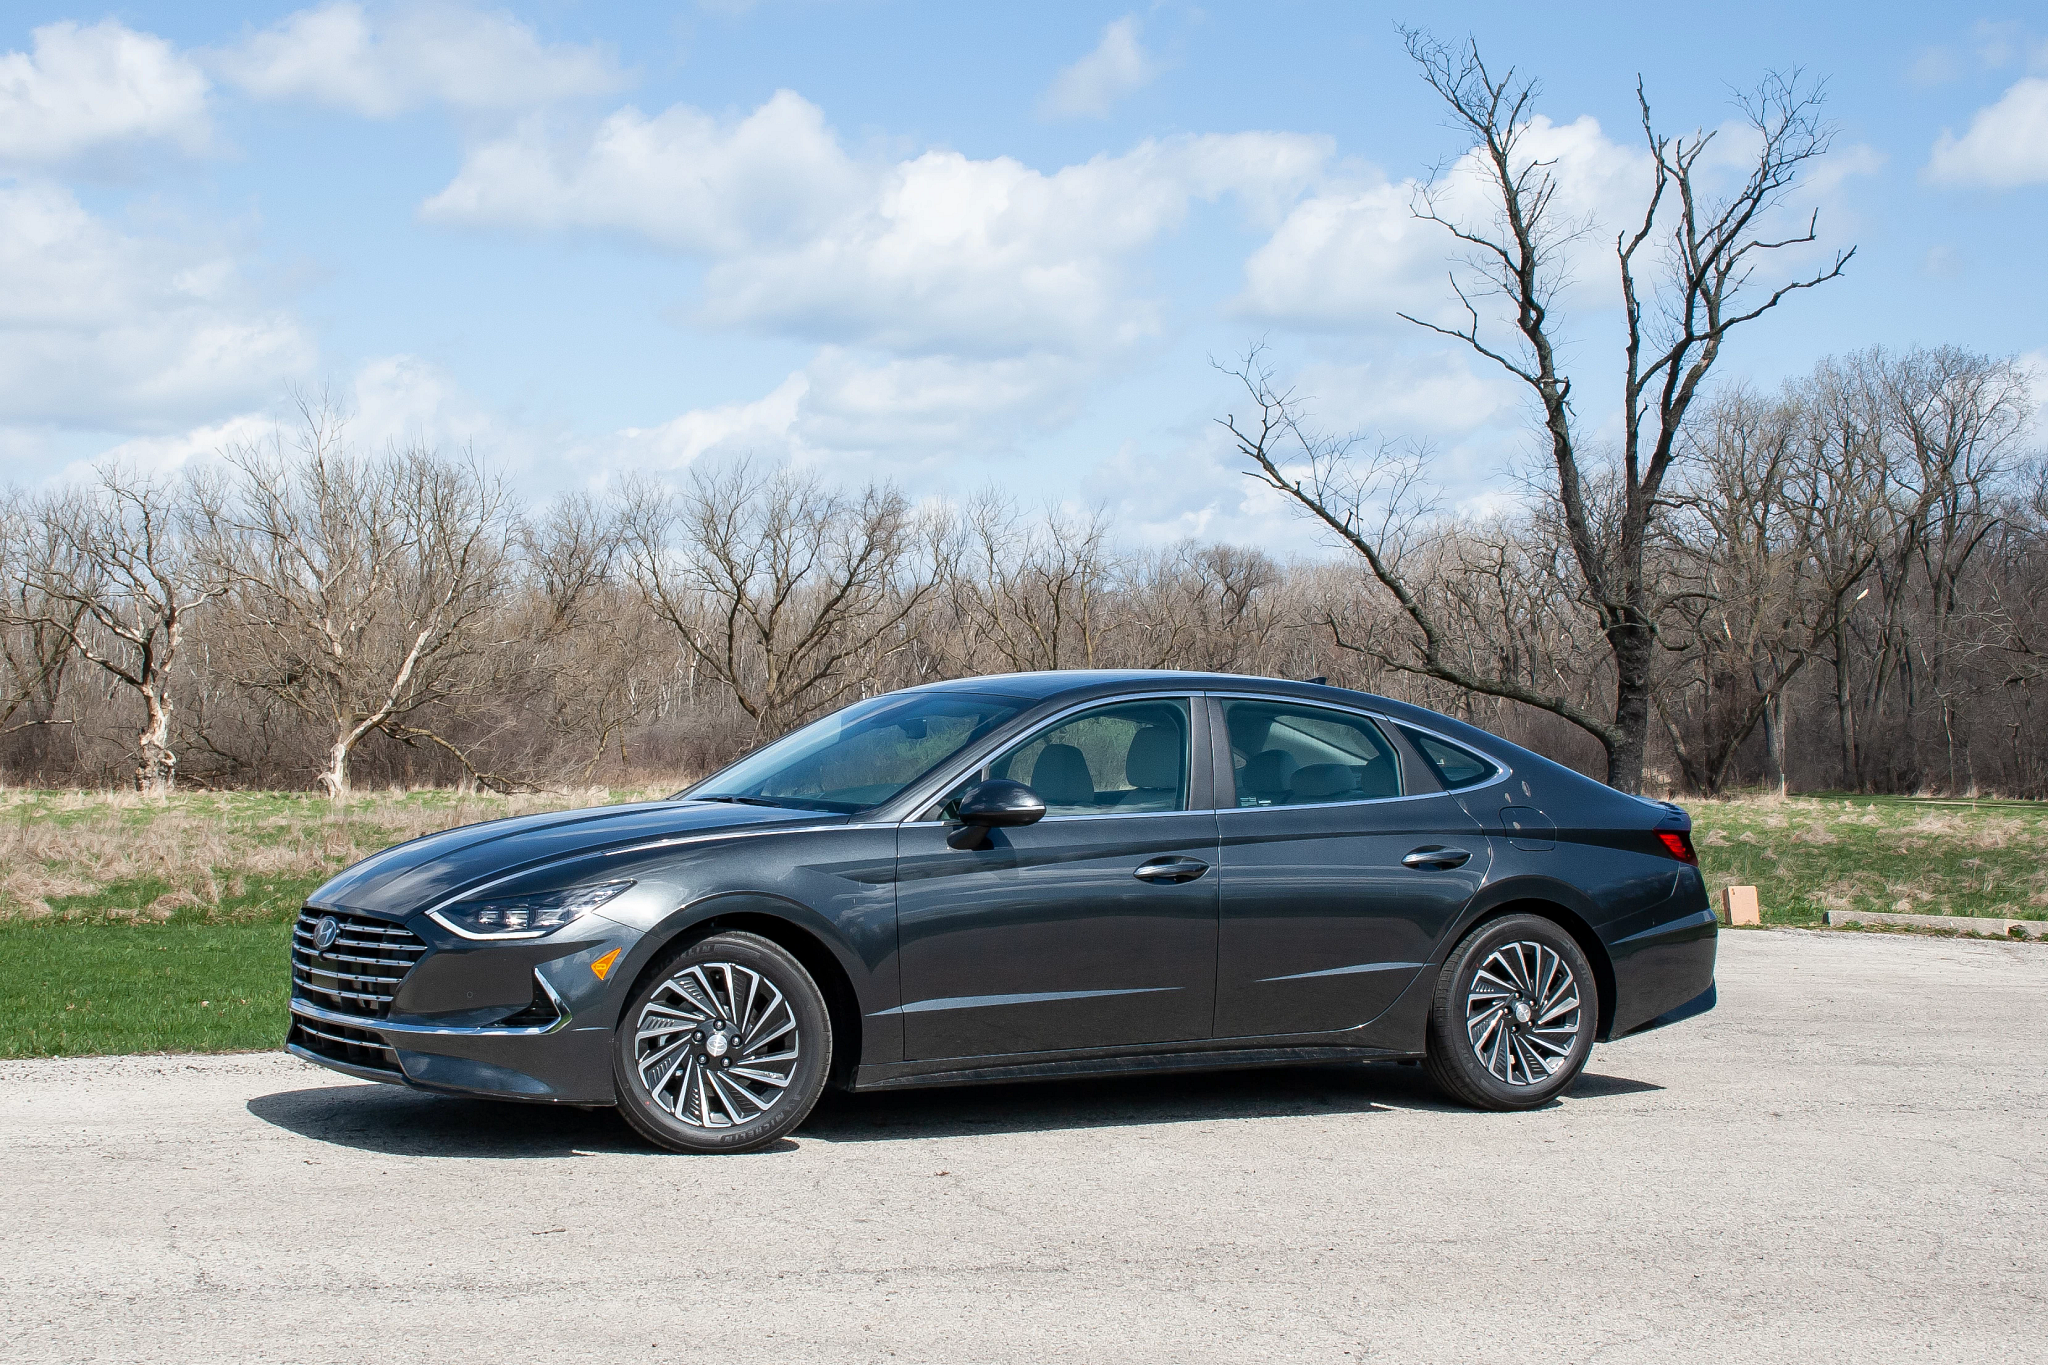 2020 Hyundai Sonata Hybrid Review: Ordinary in the Best Way